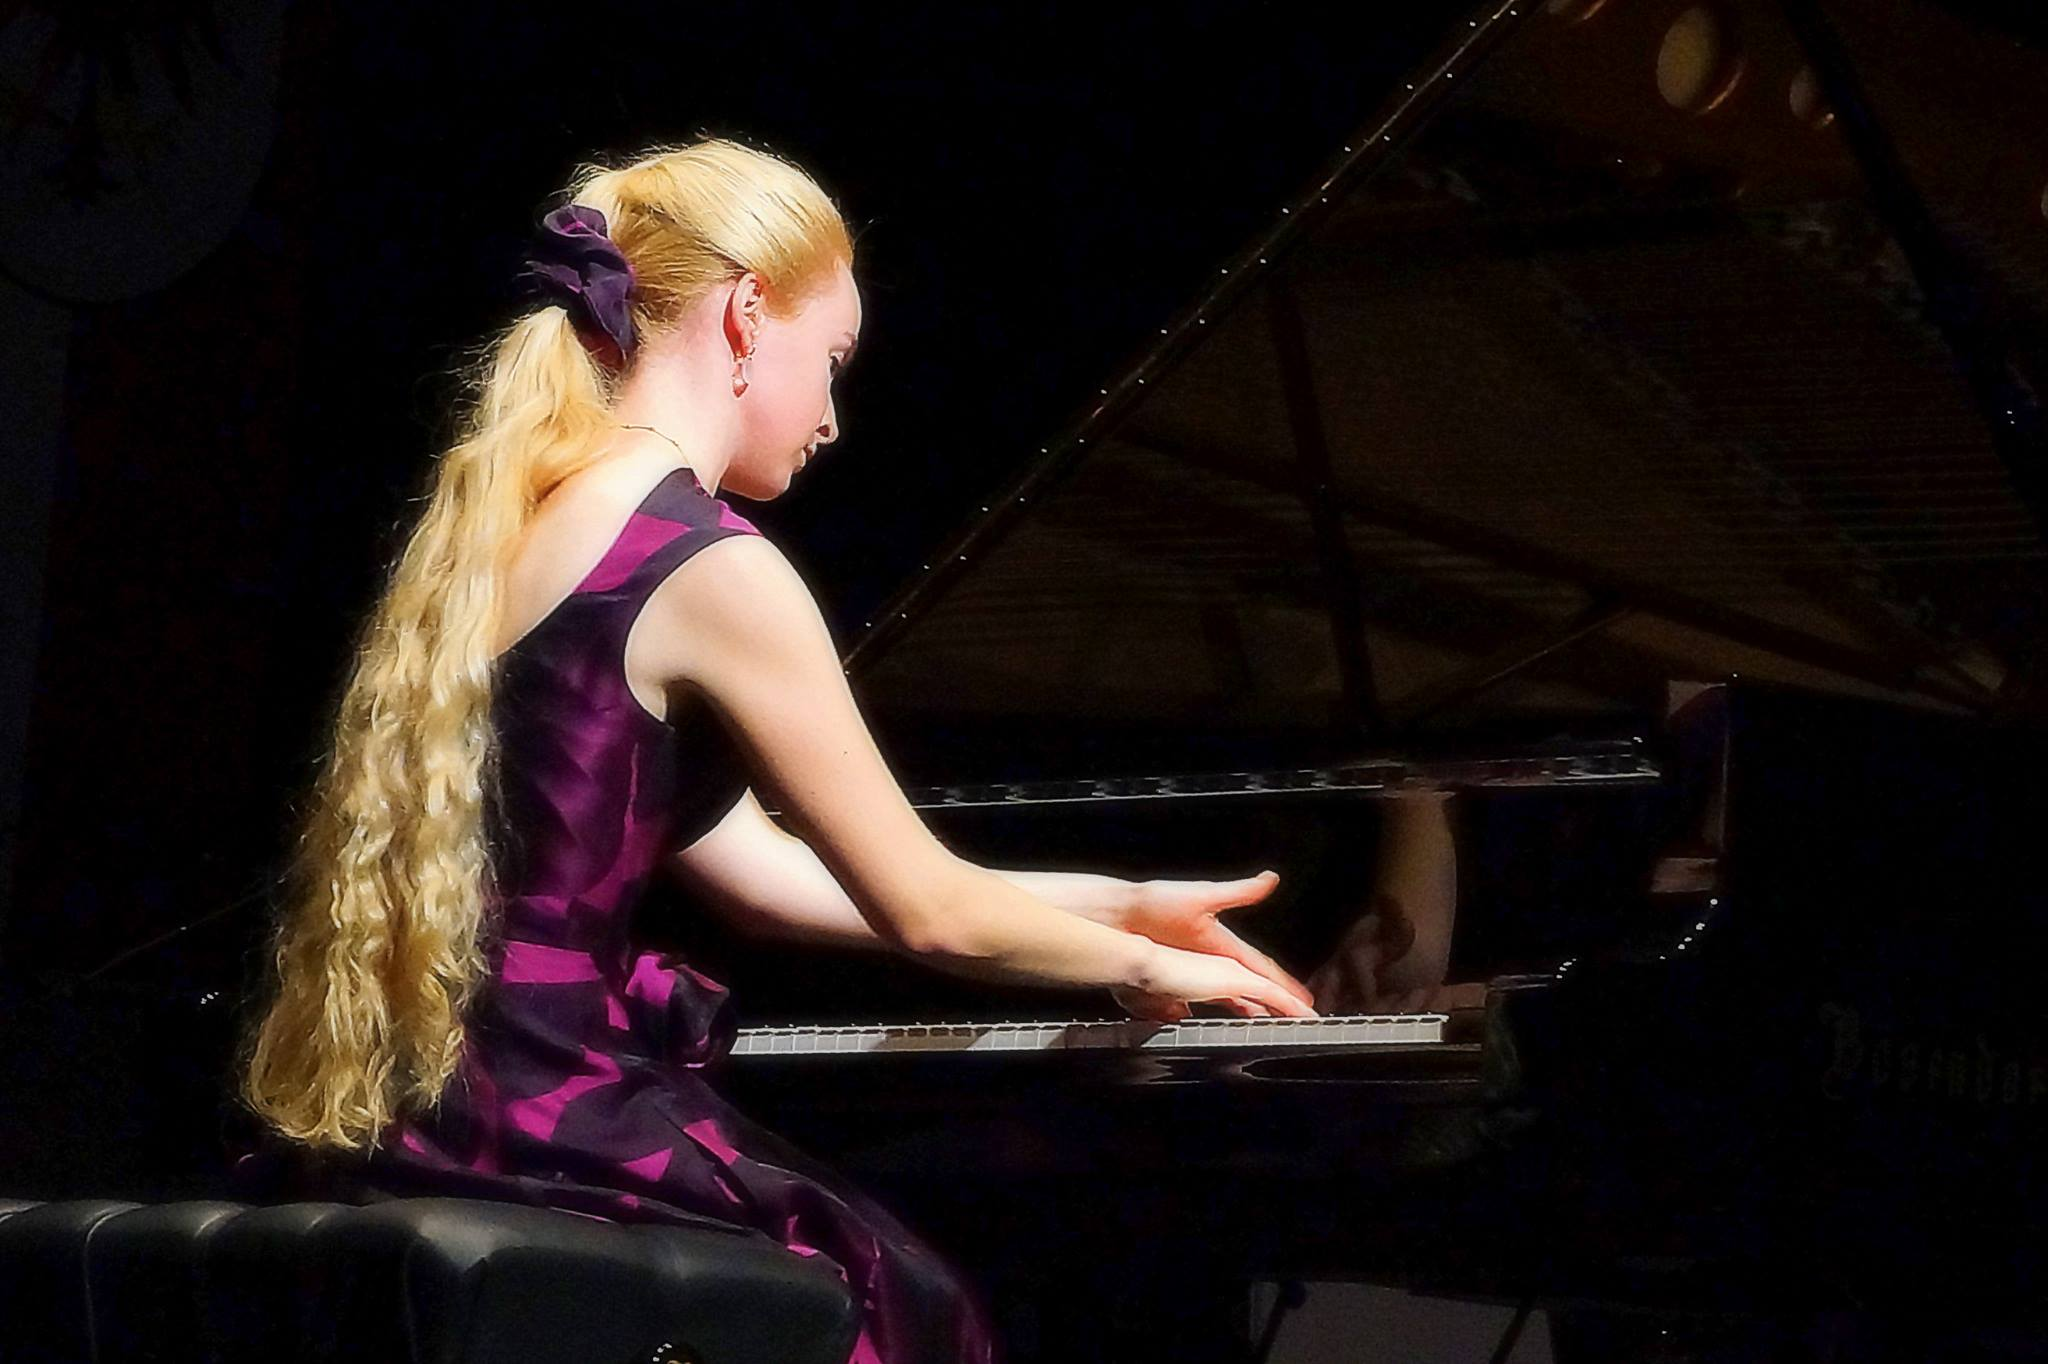 Viktoria Hirschhuber playing the piano